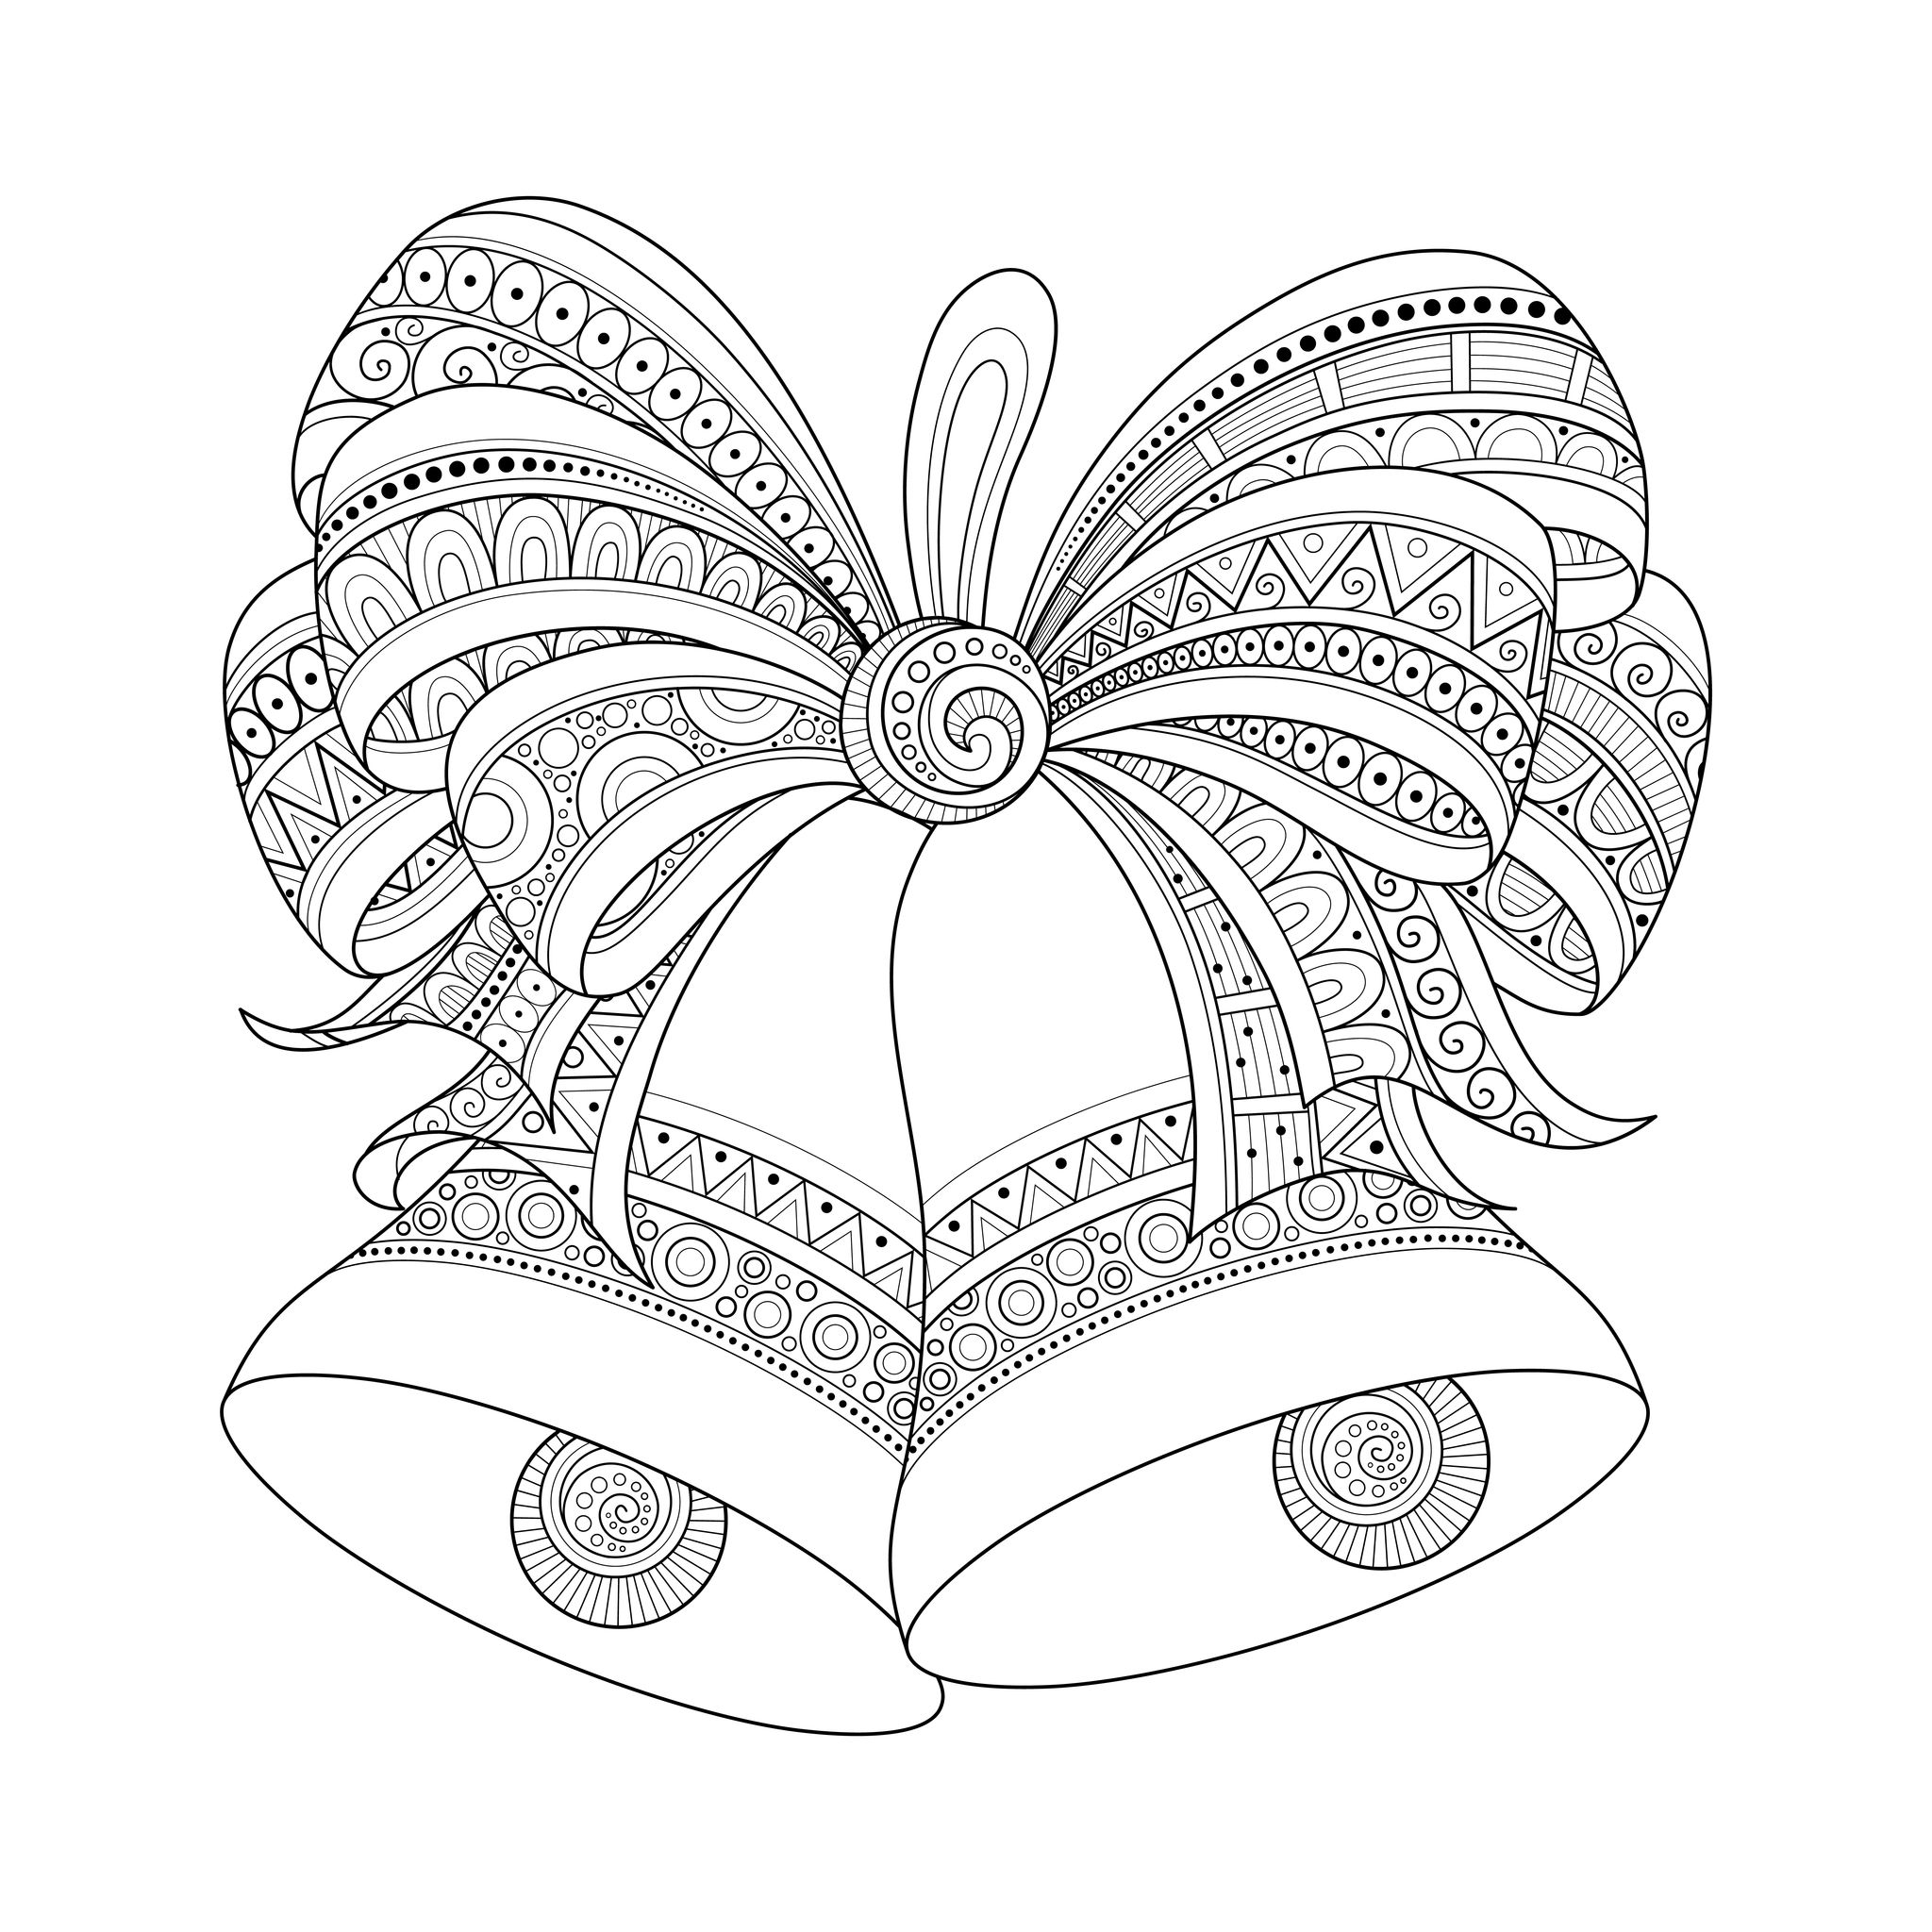 48433033 - ornate monochrome christmas golden bells with red bow. patterned objects for coloring books. new year and christmas templateA partir de la galerie : Noel